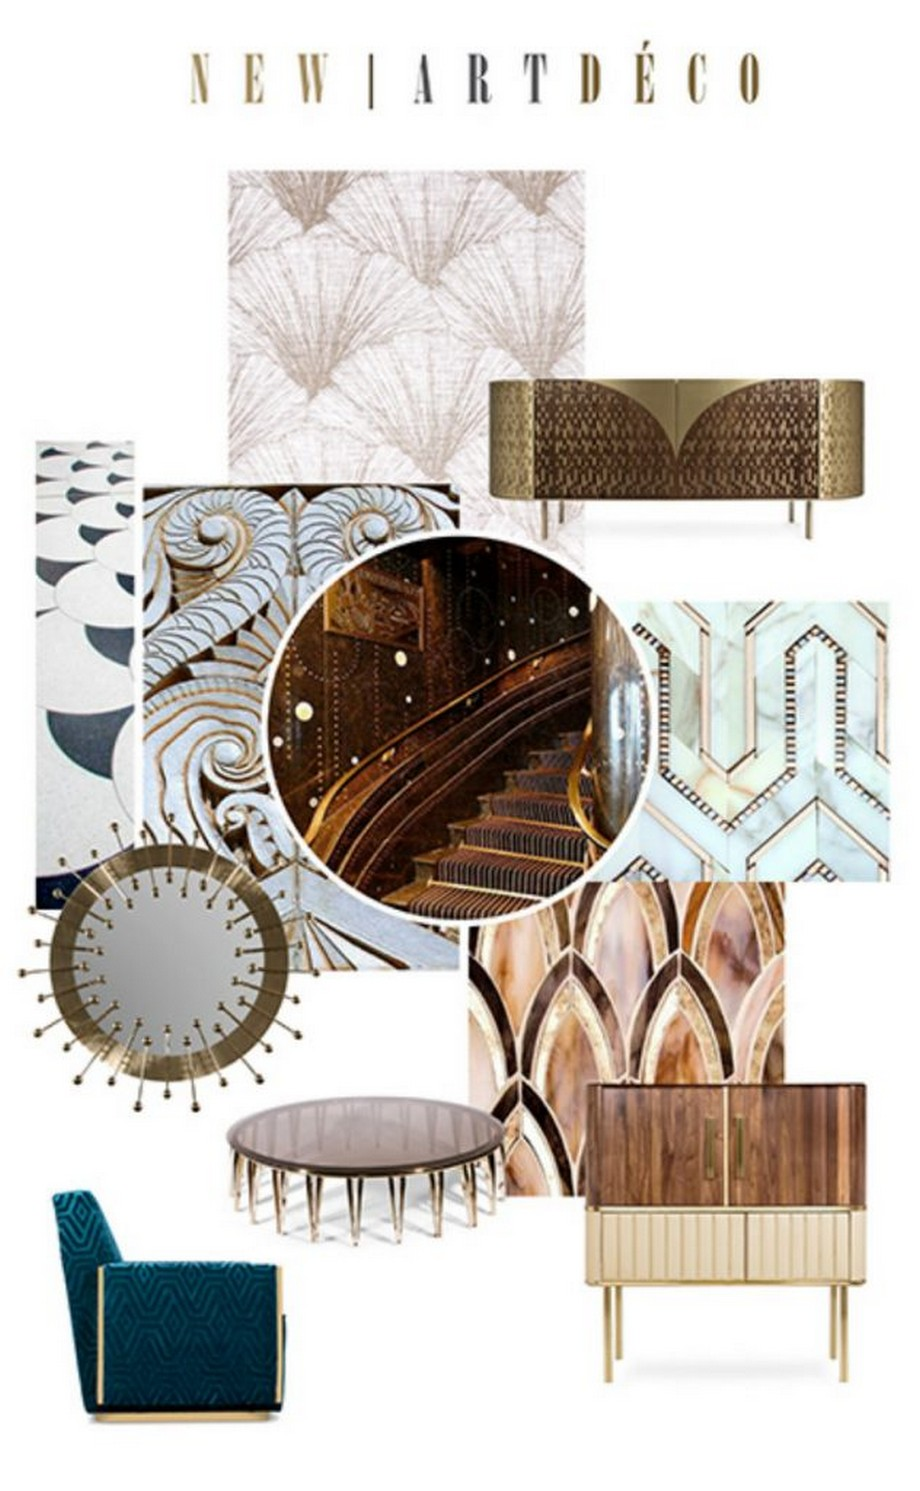 Tendencias de color: Moodboards de lujo para 2019 tendencias de color Tendencias de color: Moodboards de lujo para 2019 Searching for Some Design Inspiration We Have The Moodboards You Need 7 1